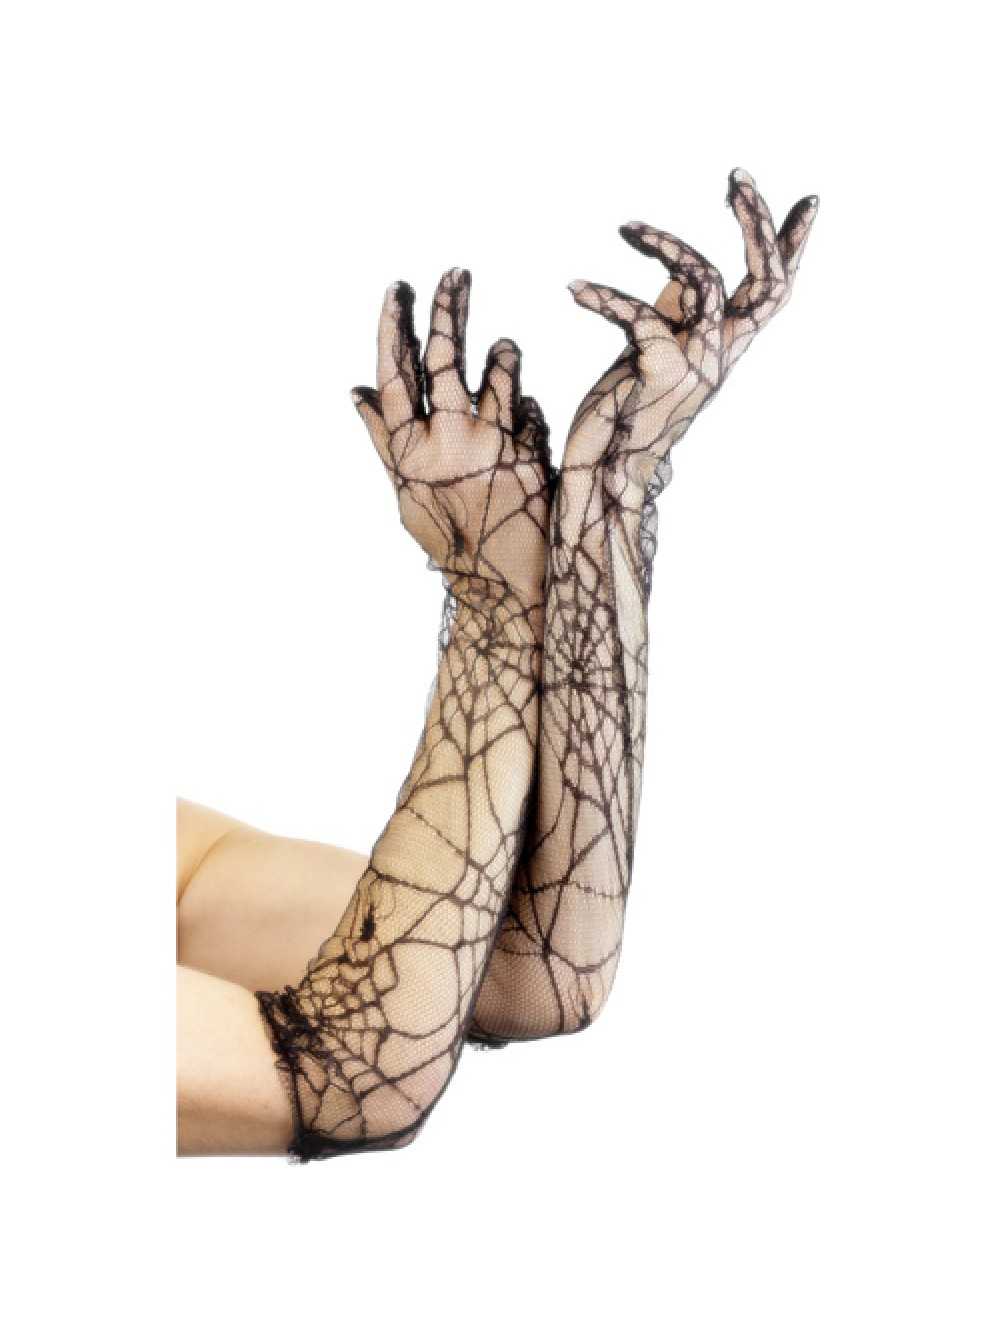 Lace Gloves 53cm/21 inches Black with Spiderwebs 5020570225493